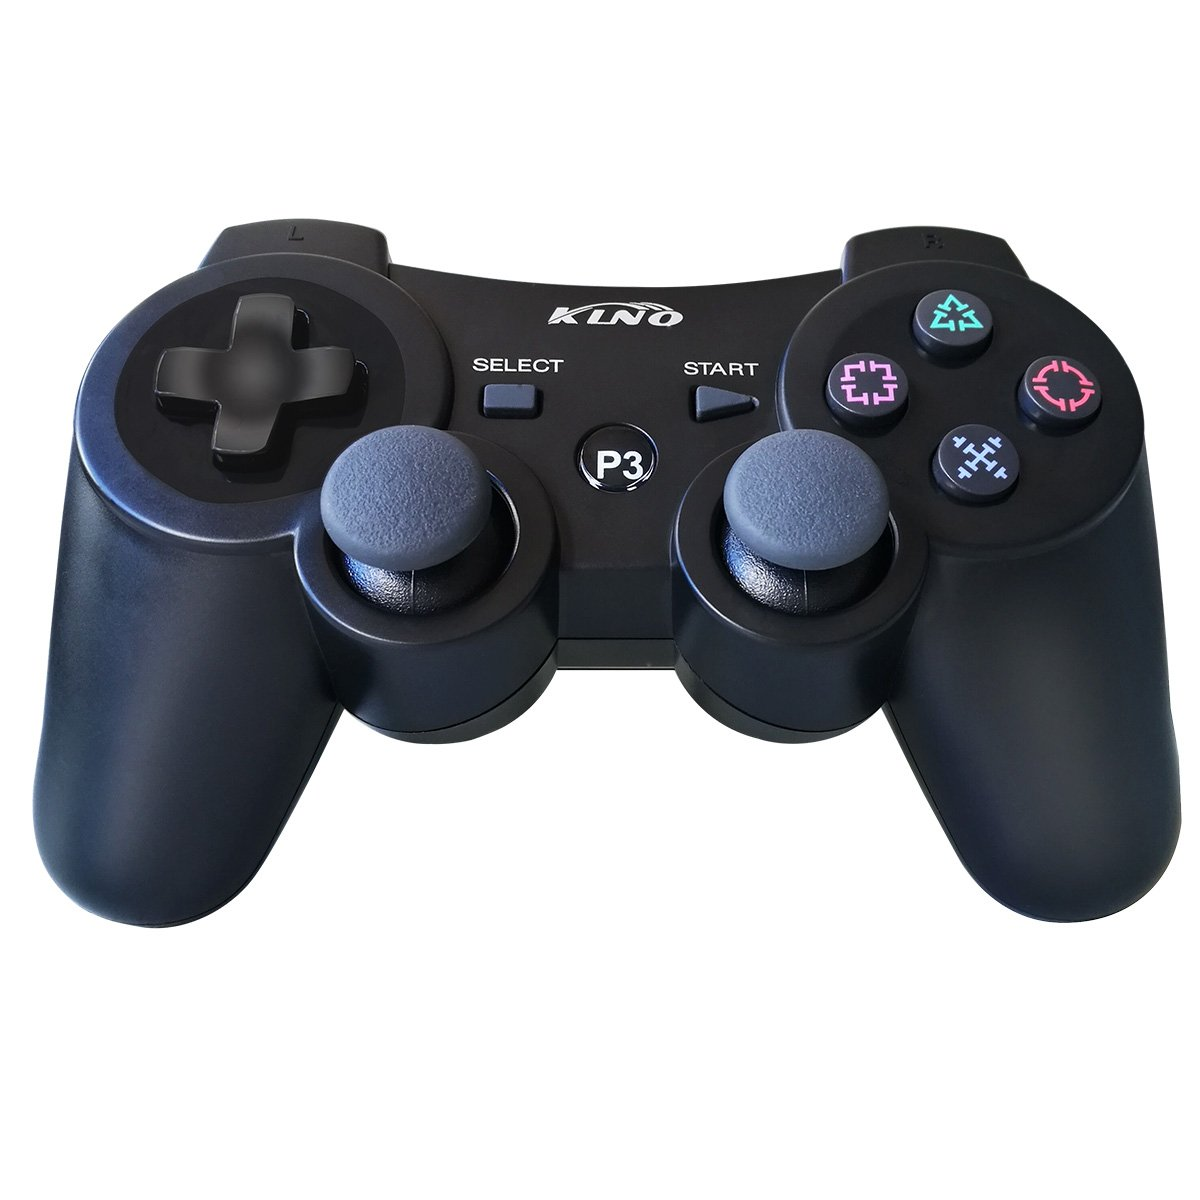 PS3 Controller Wireless Dualshock Joystick - KLNO PS39 Bluetooth Gamepad Sixaxis, Super power, USB Charger, Sixaxis, Dualshock3 including 1 cable For Playstation 3 we are klno,NOT turin.co